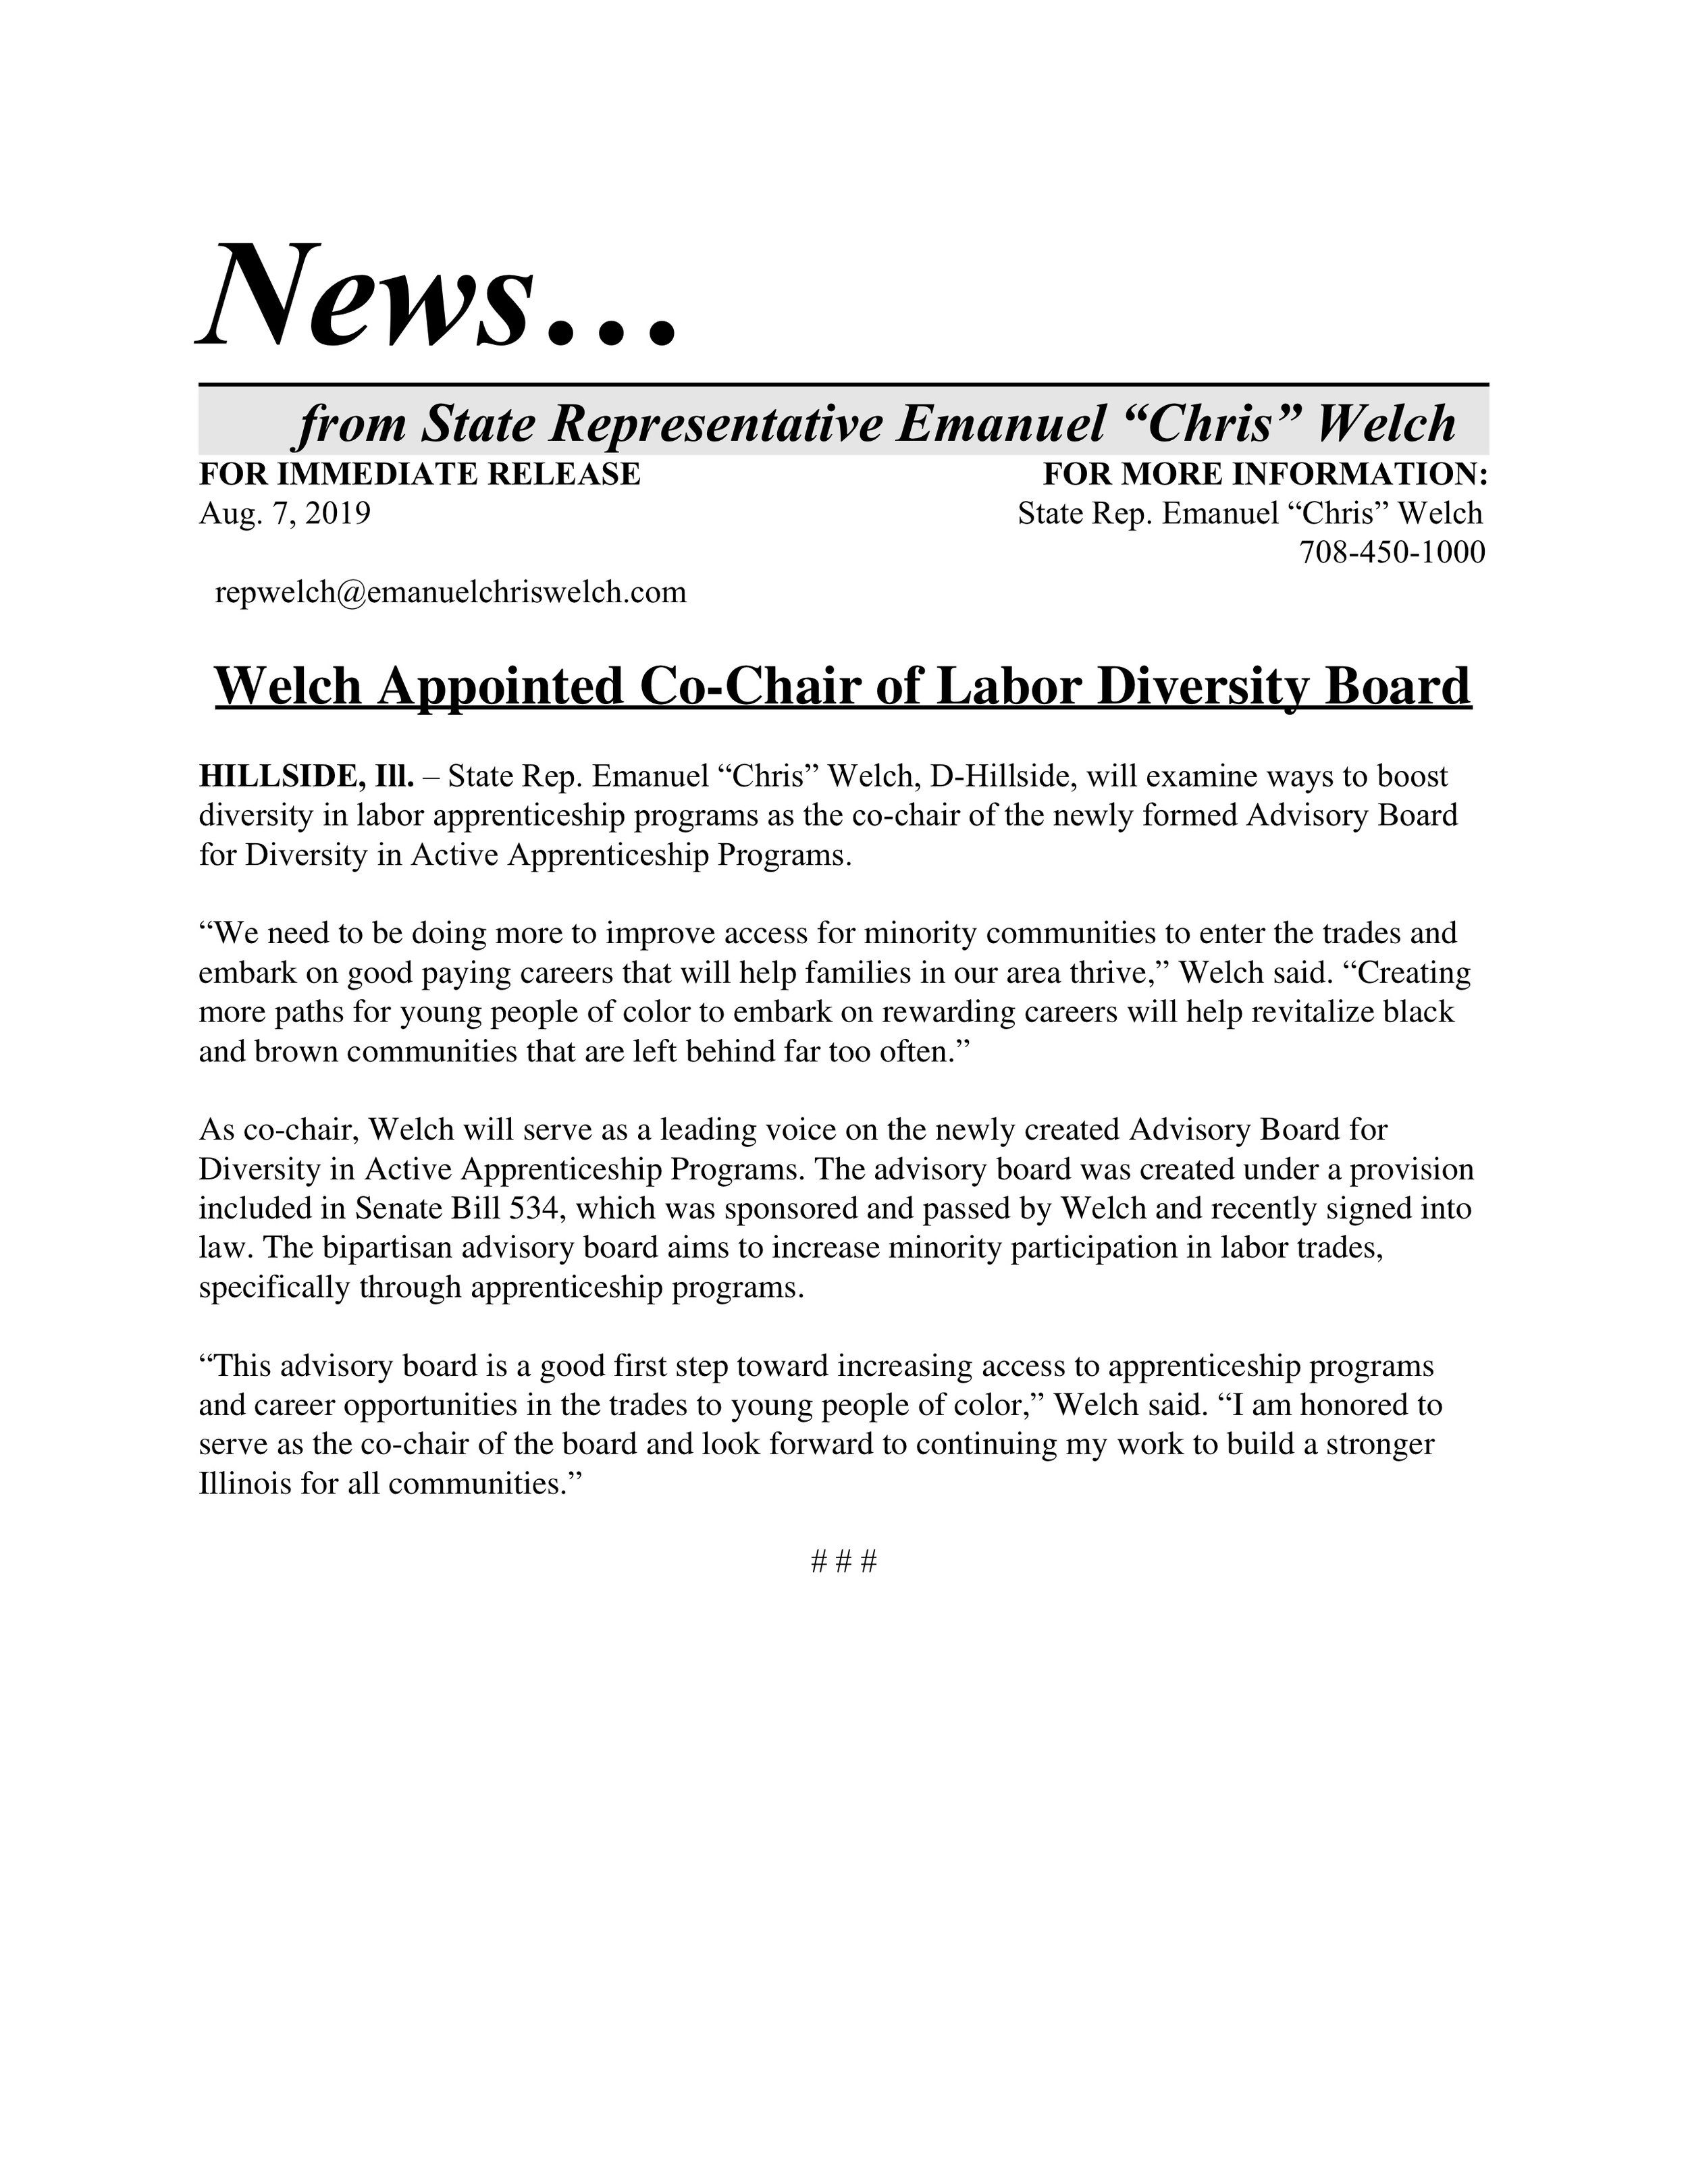 Welch Appointed Co-Chair of Labor Diversity Board  (August 7, 2019)